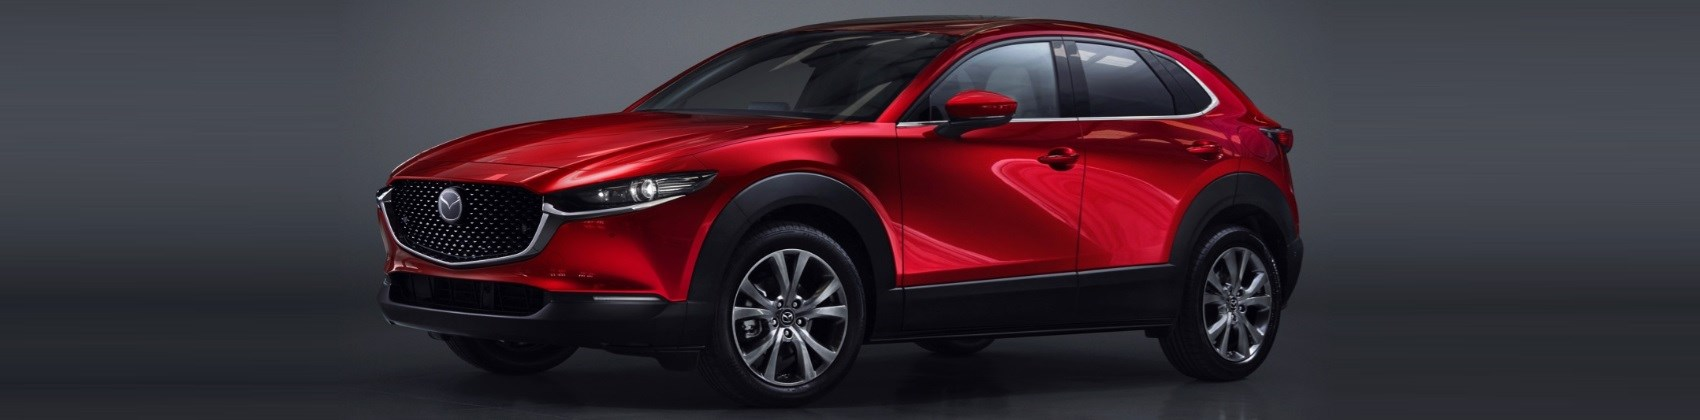 All-New Mazda CX-5